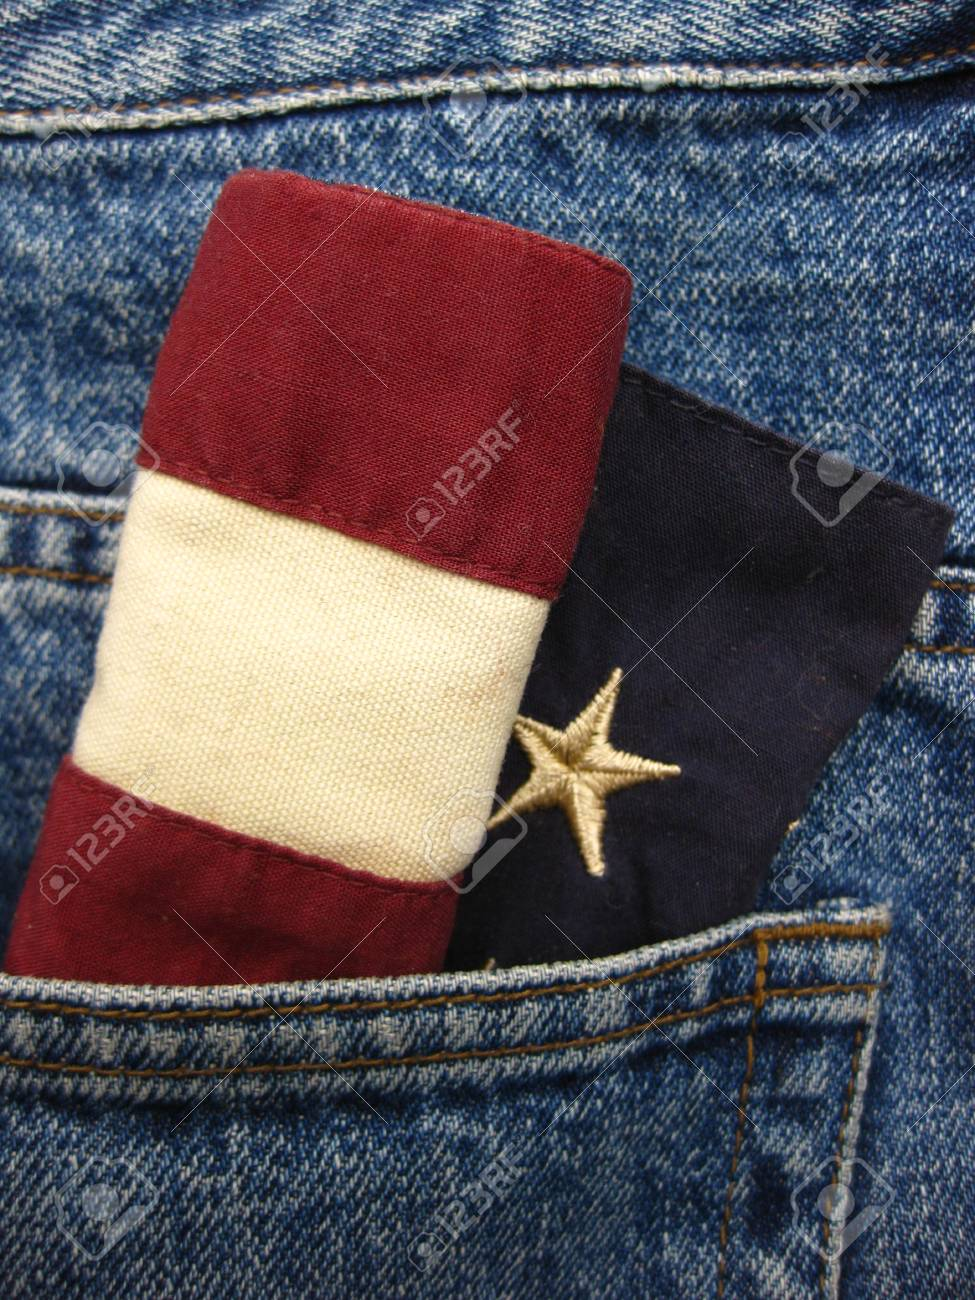 stars and stripes in jeans pocket Stock Photo - 4998411